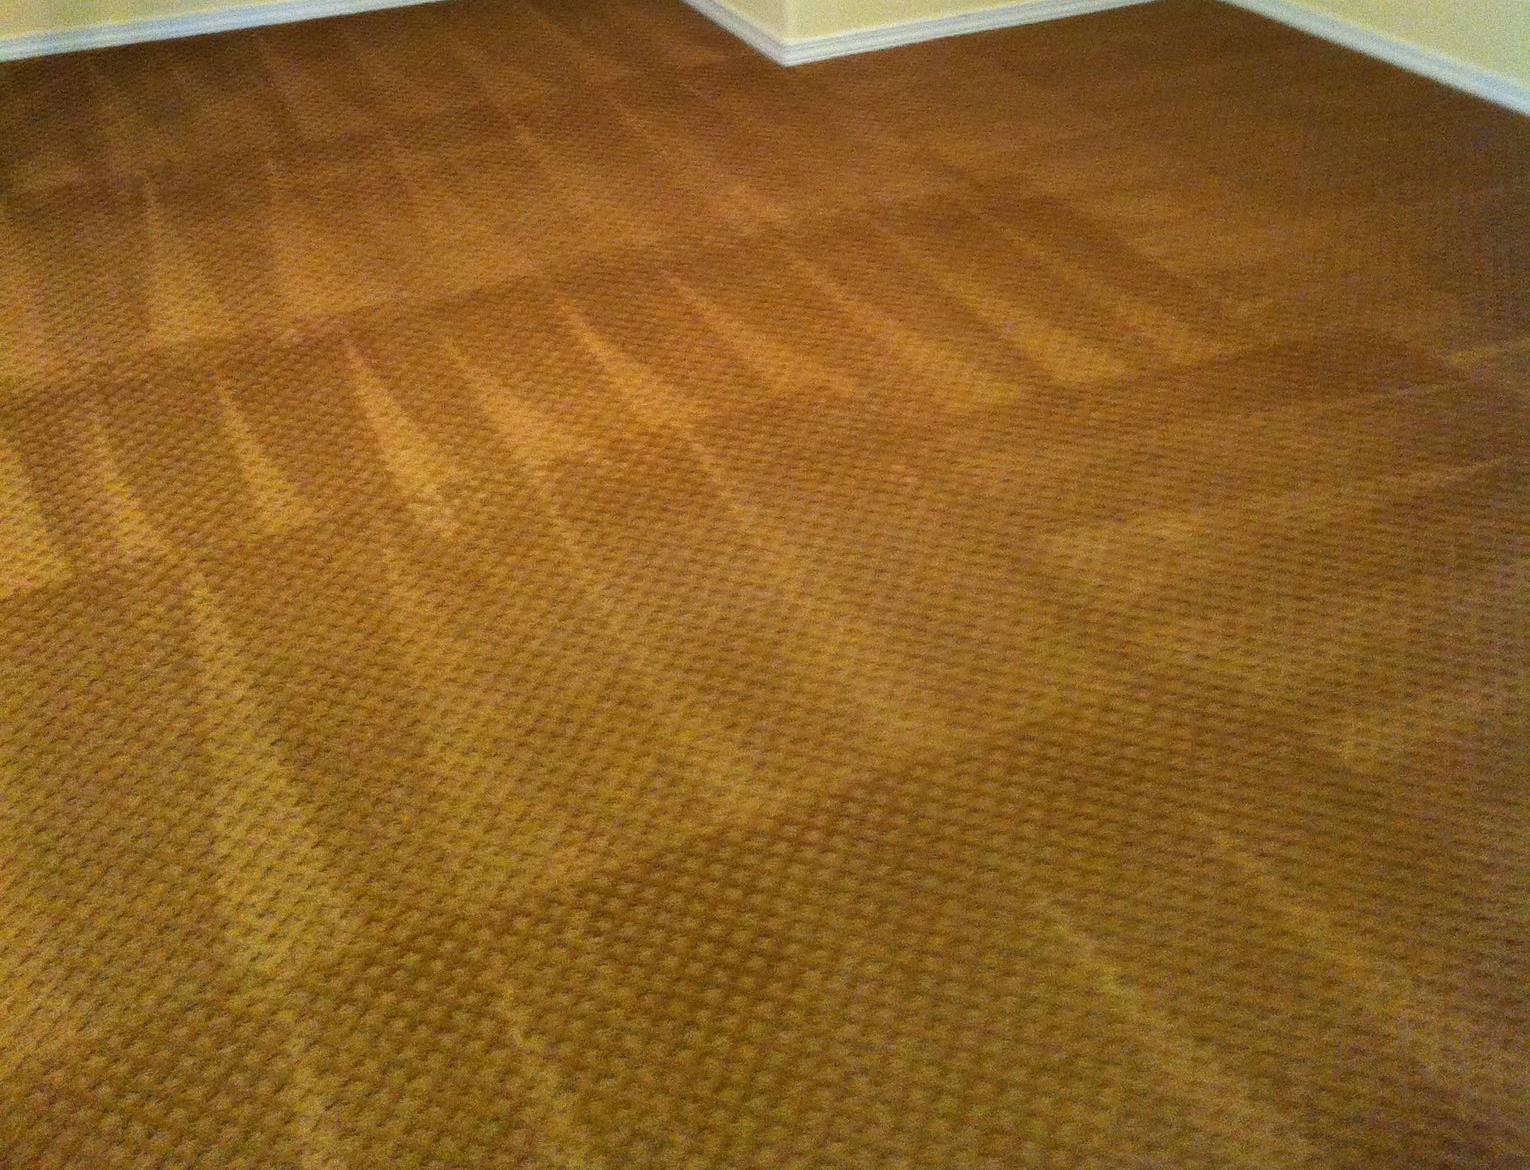 carpet cleaning project by northwest carpet cleaning project 2 ...